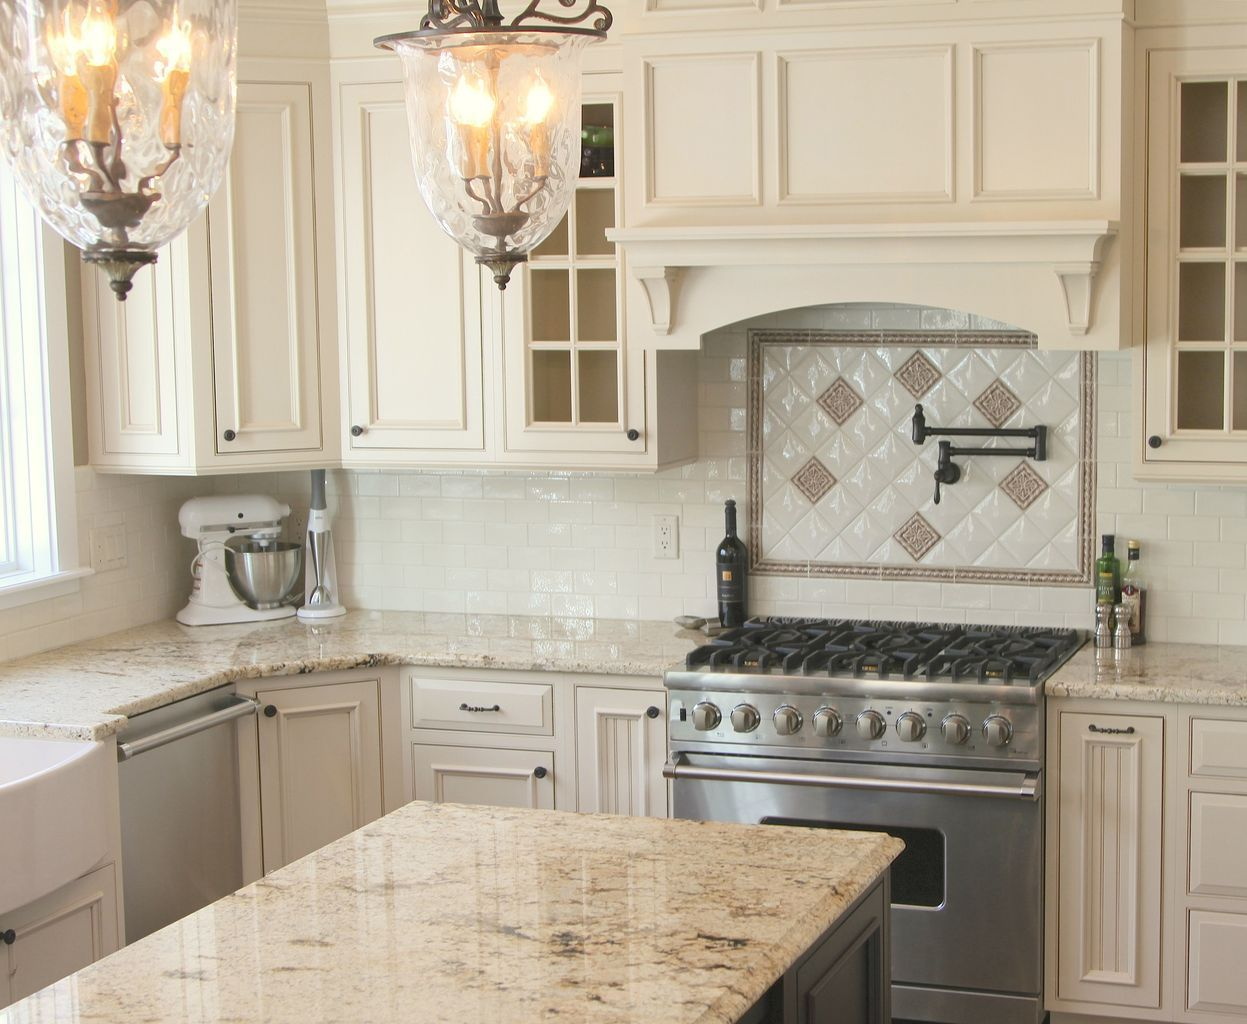 Sink Kitchen Cabinets Tables Austin This Color Slightly Darker Counter Dark Floors Stainless